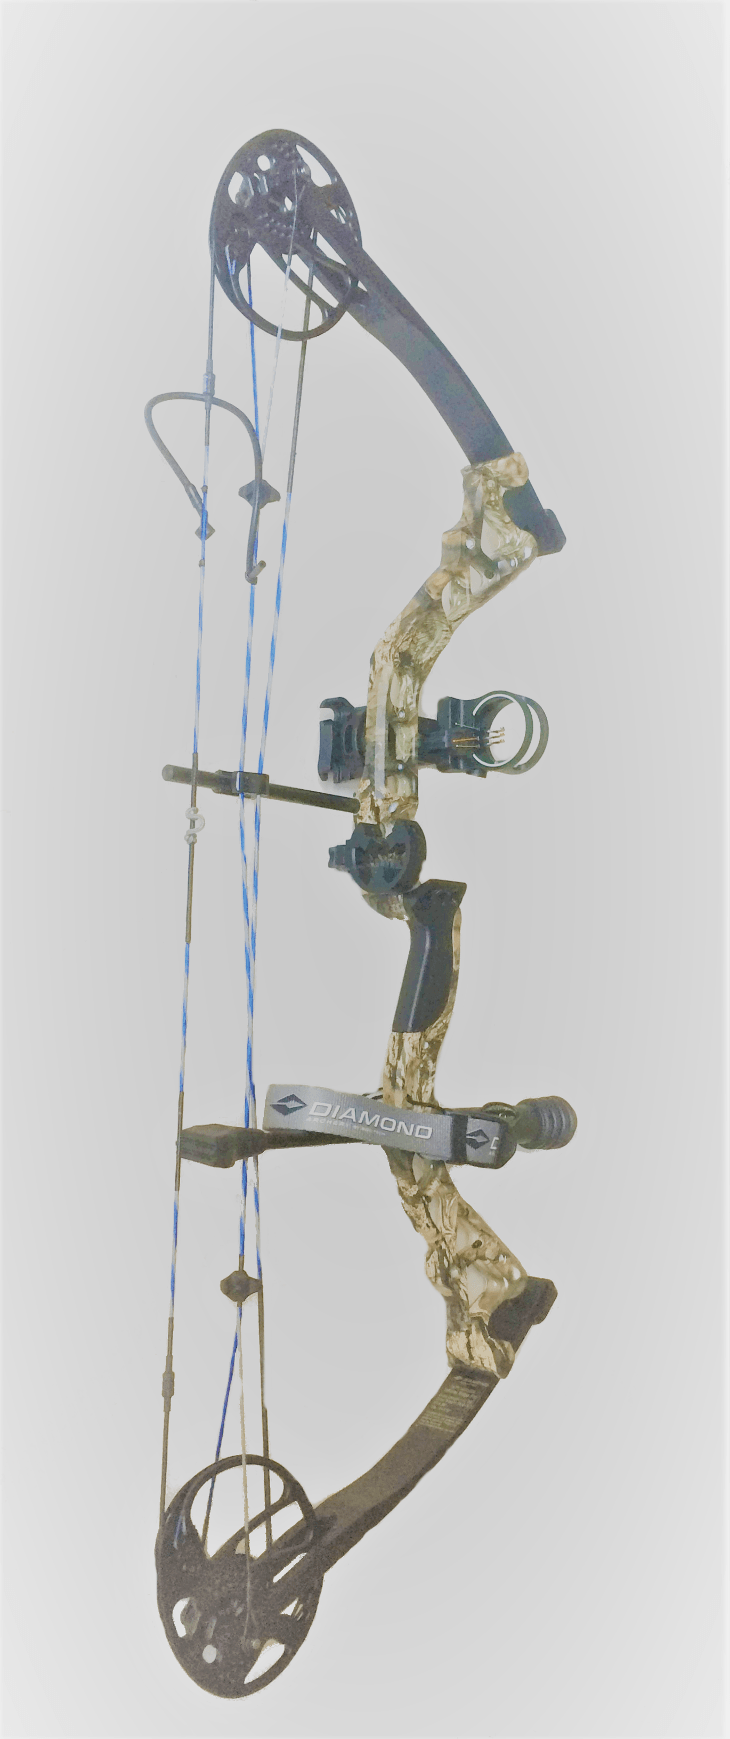 The Best Beginner Compound Bow: Which One is Right for You